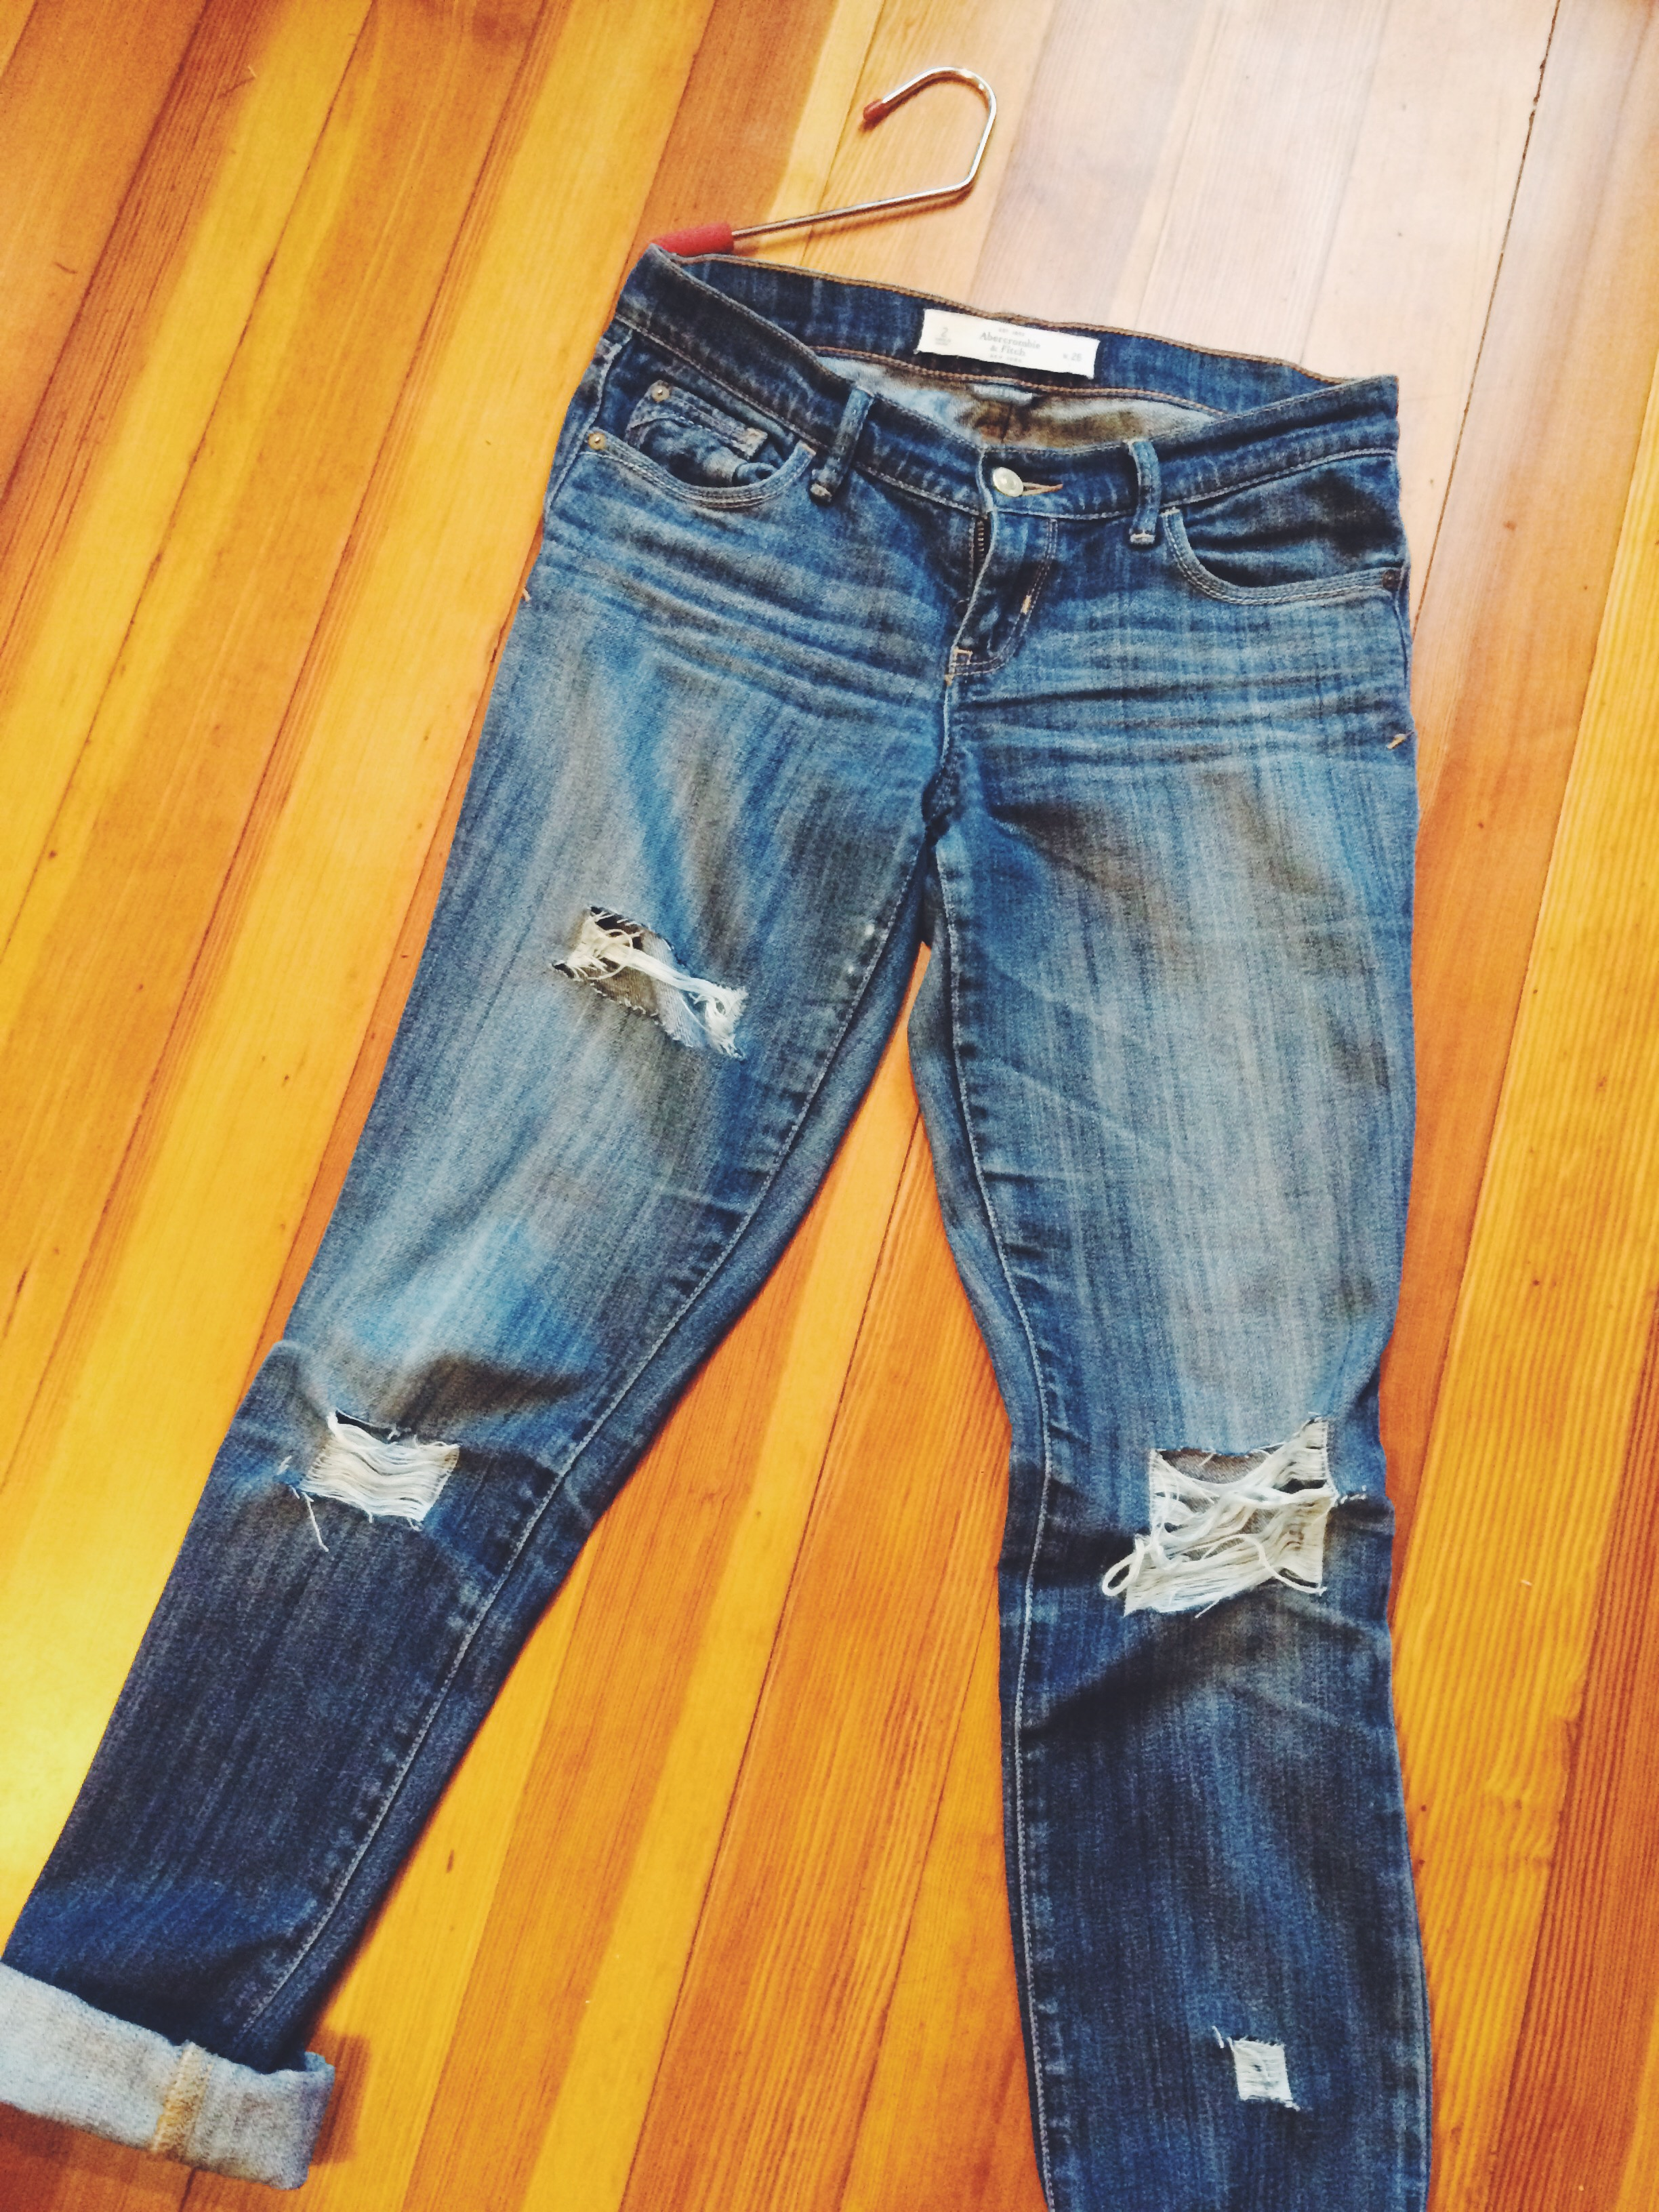 This Is How to Rip Your Jeans Like a Fashion Pro images